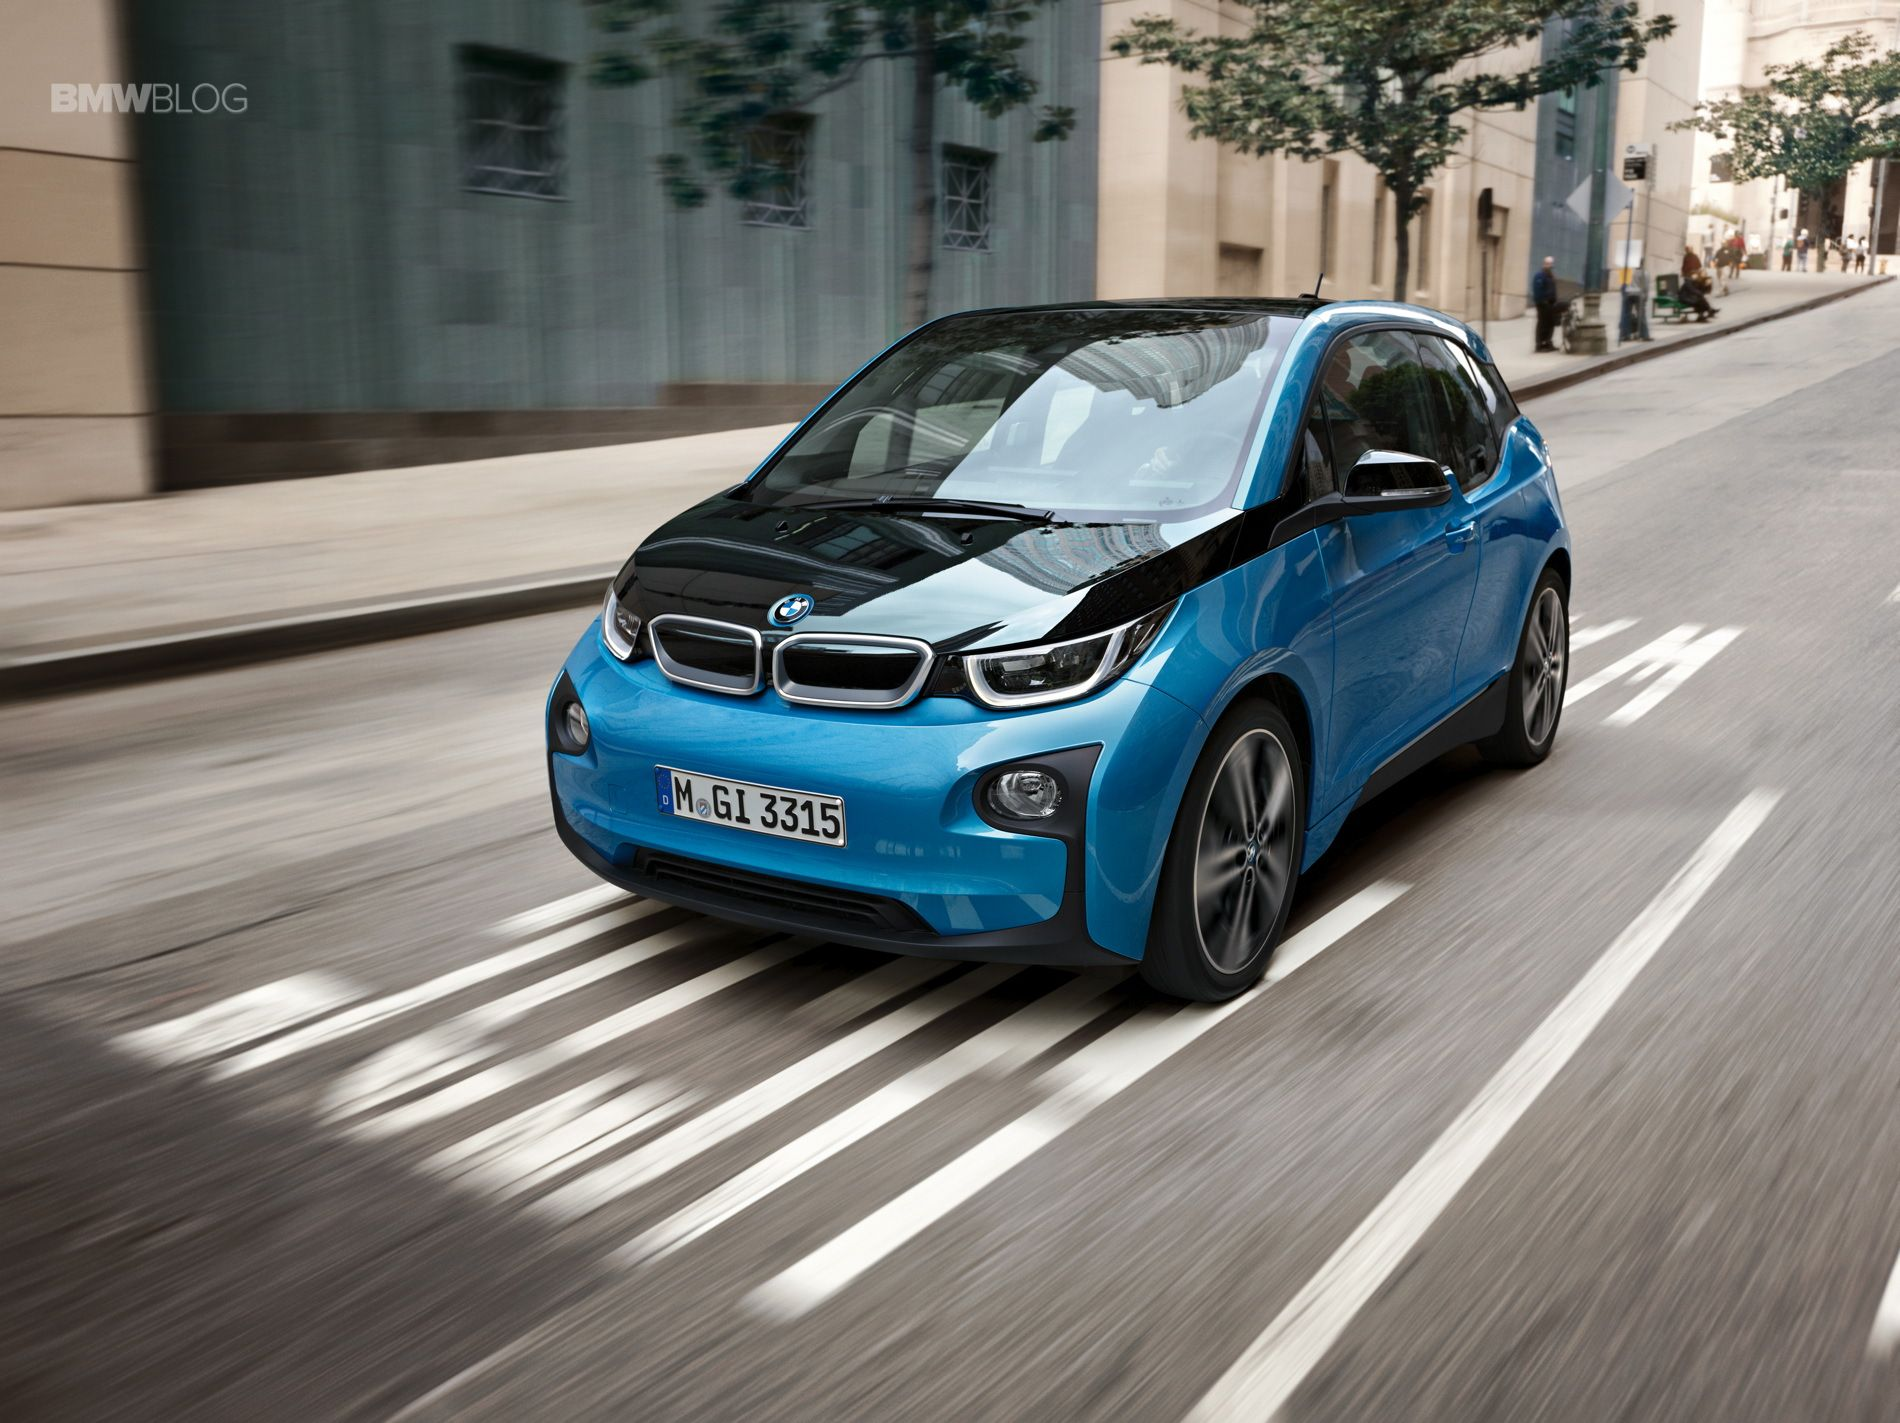 BMW i3 is one of UK's best used cars under £15,000 Bmw